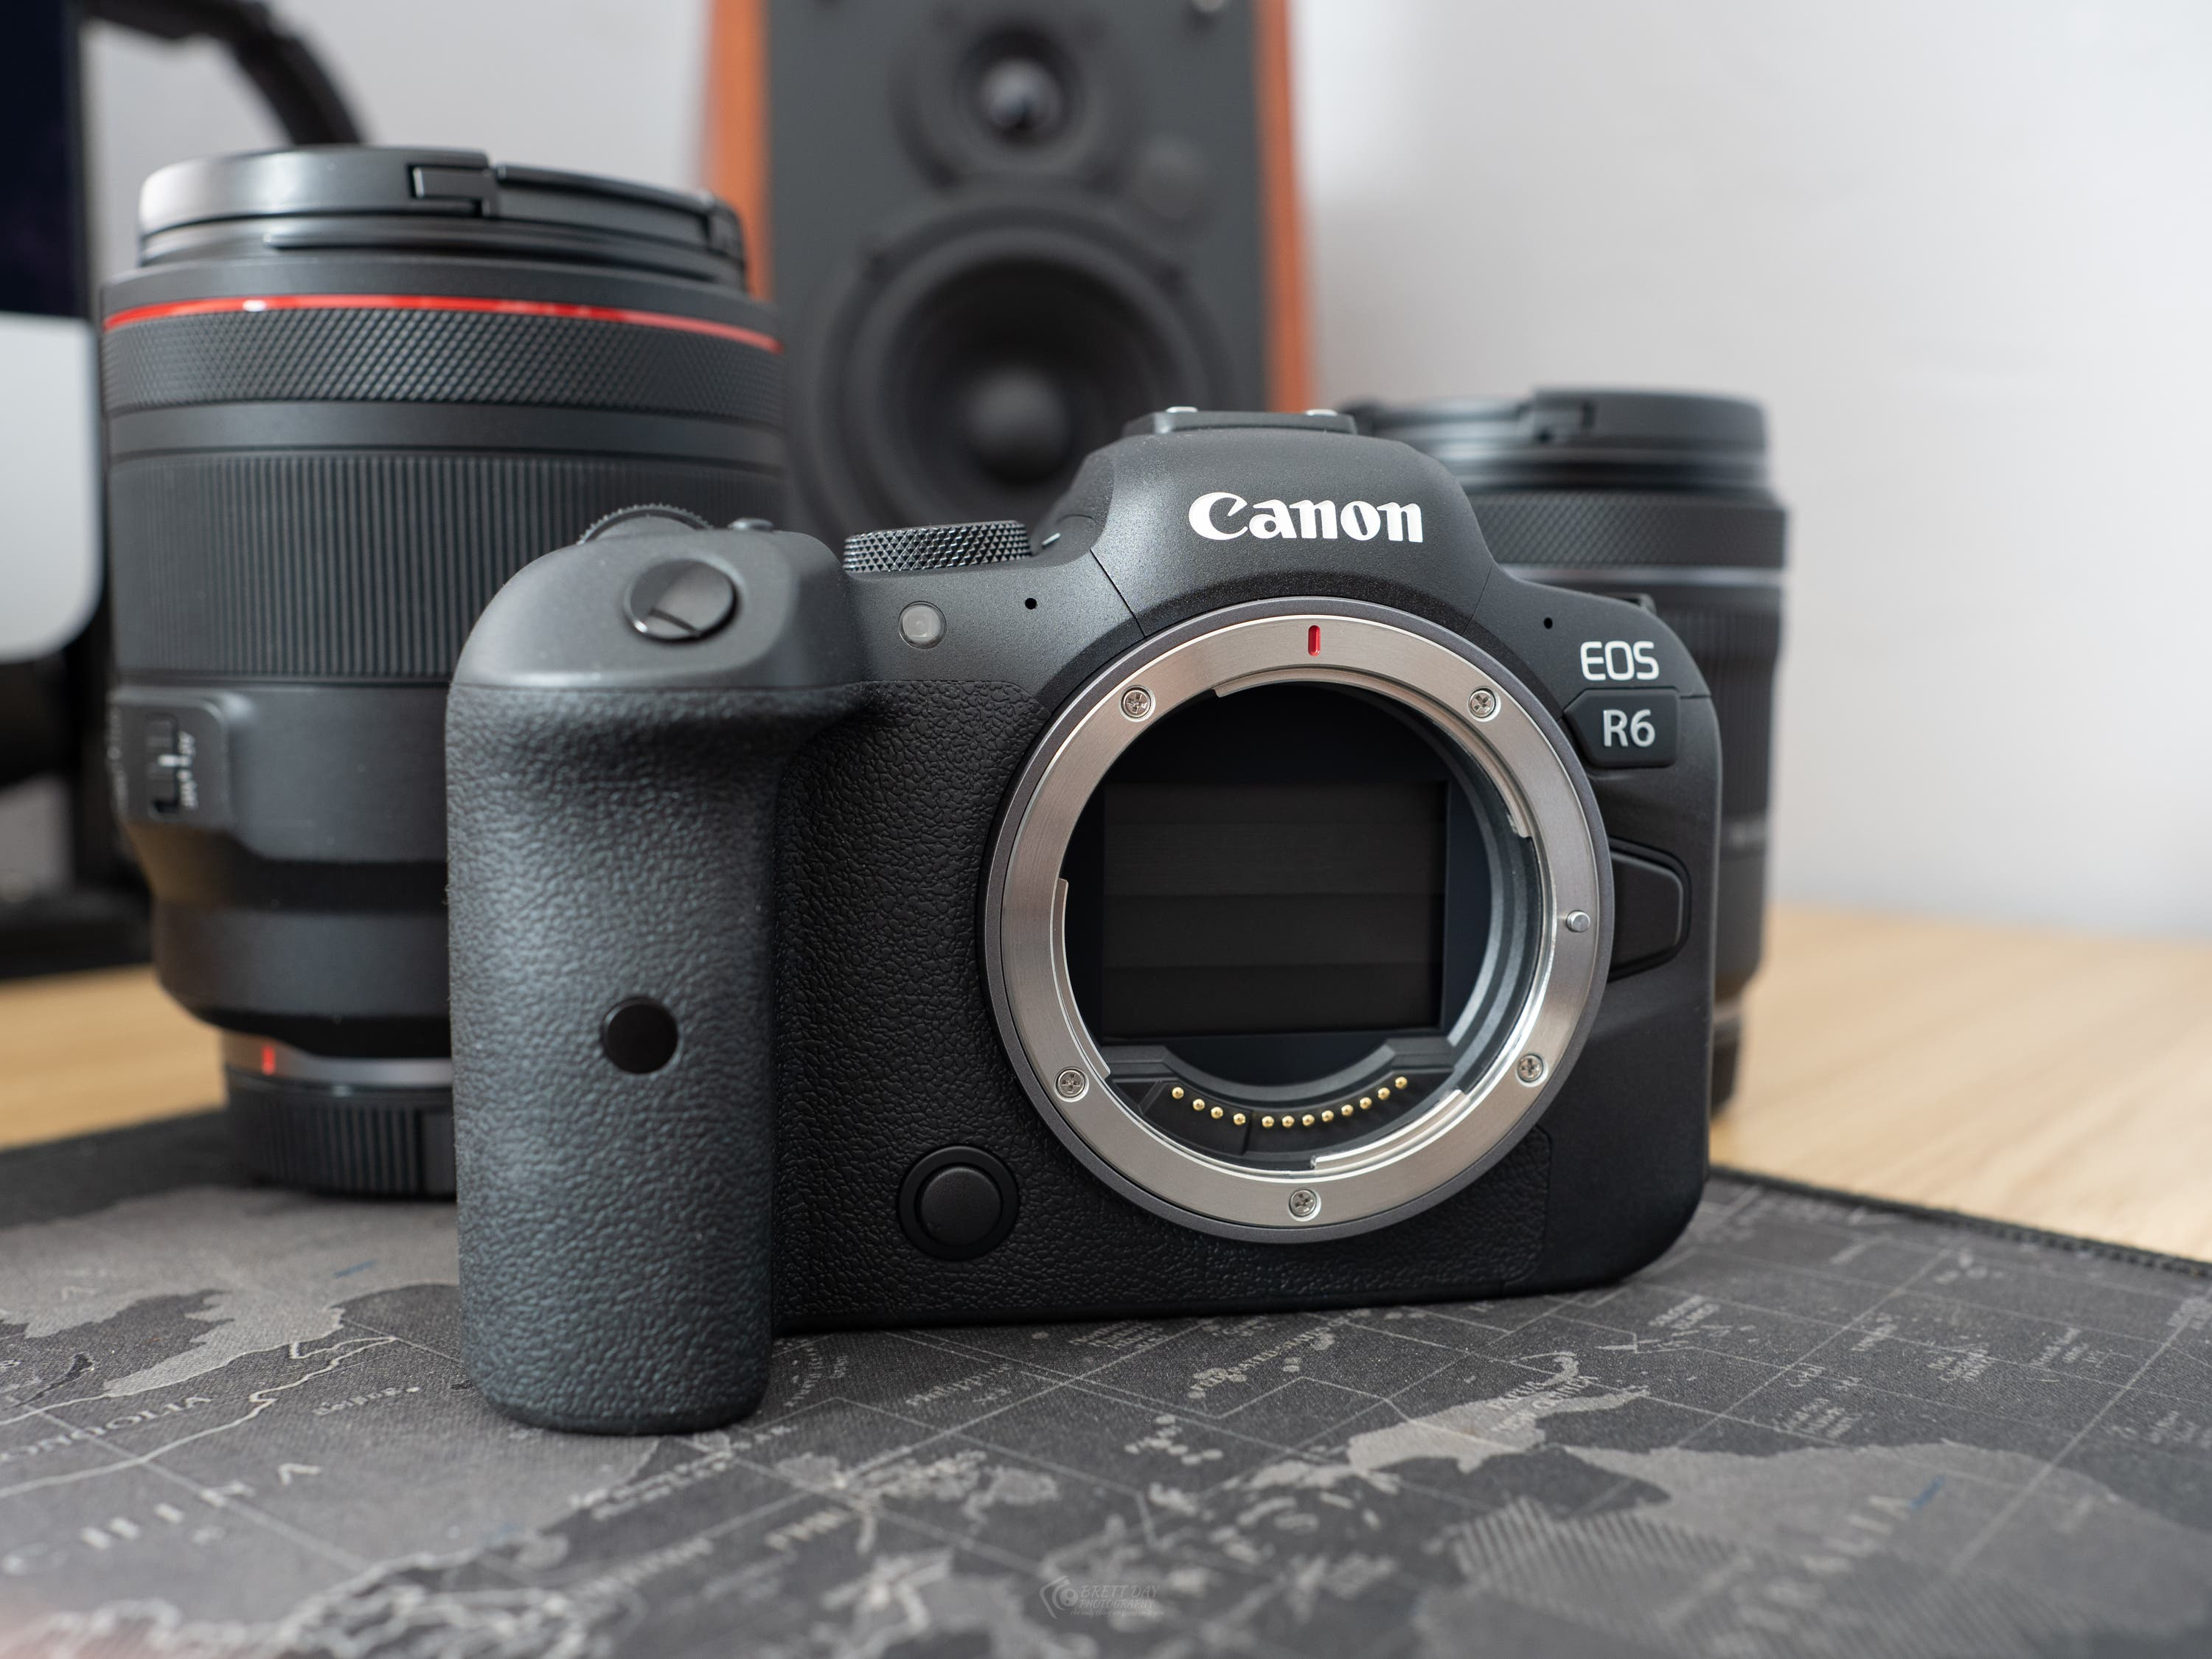 It's Really Hard to Find Good Canon Gear at the Prices We Found. Check This Out